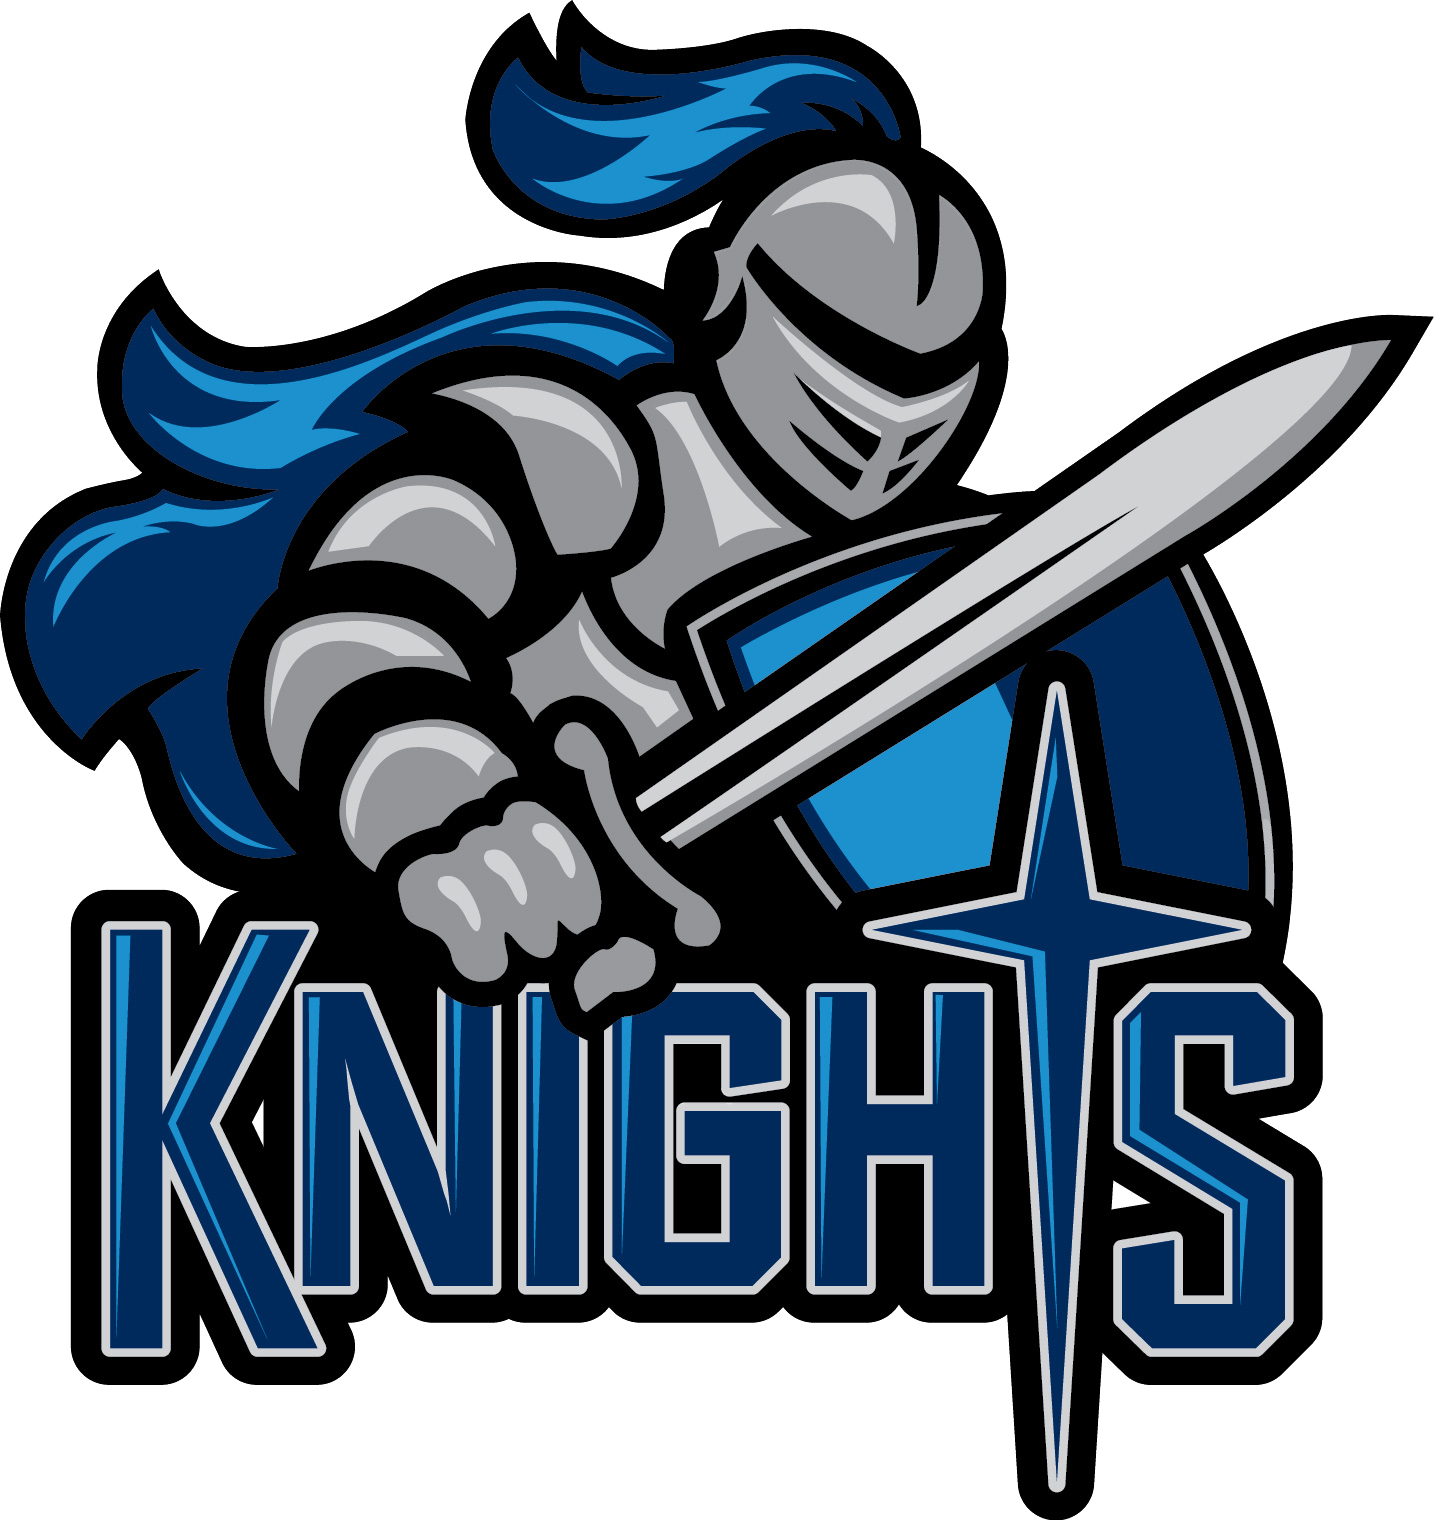 Knight basketball clipart clip royalty free download kinghts logo   Sports - SiouxlandMatters   Man cave-sports ... clip royalty free download